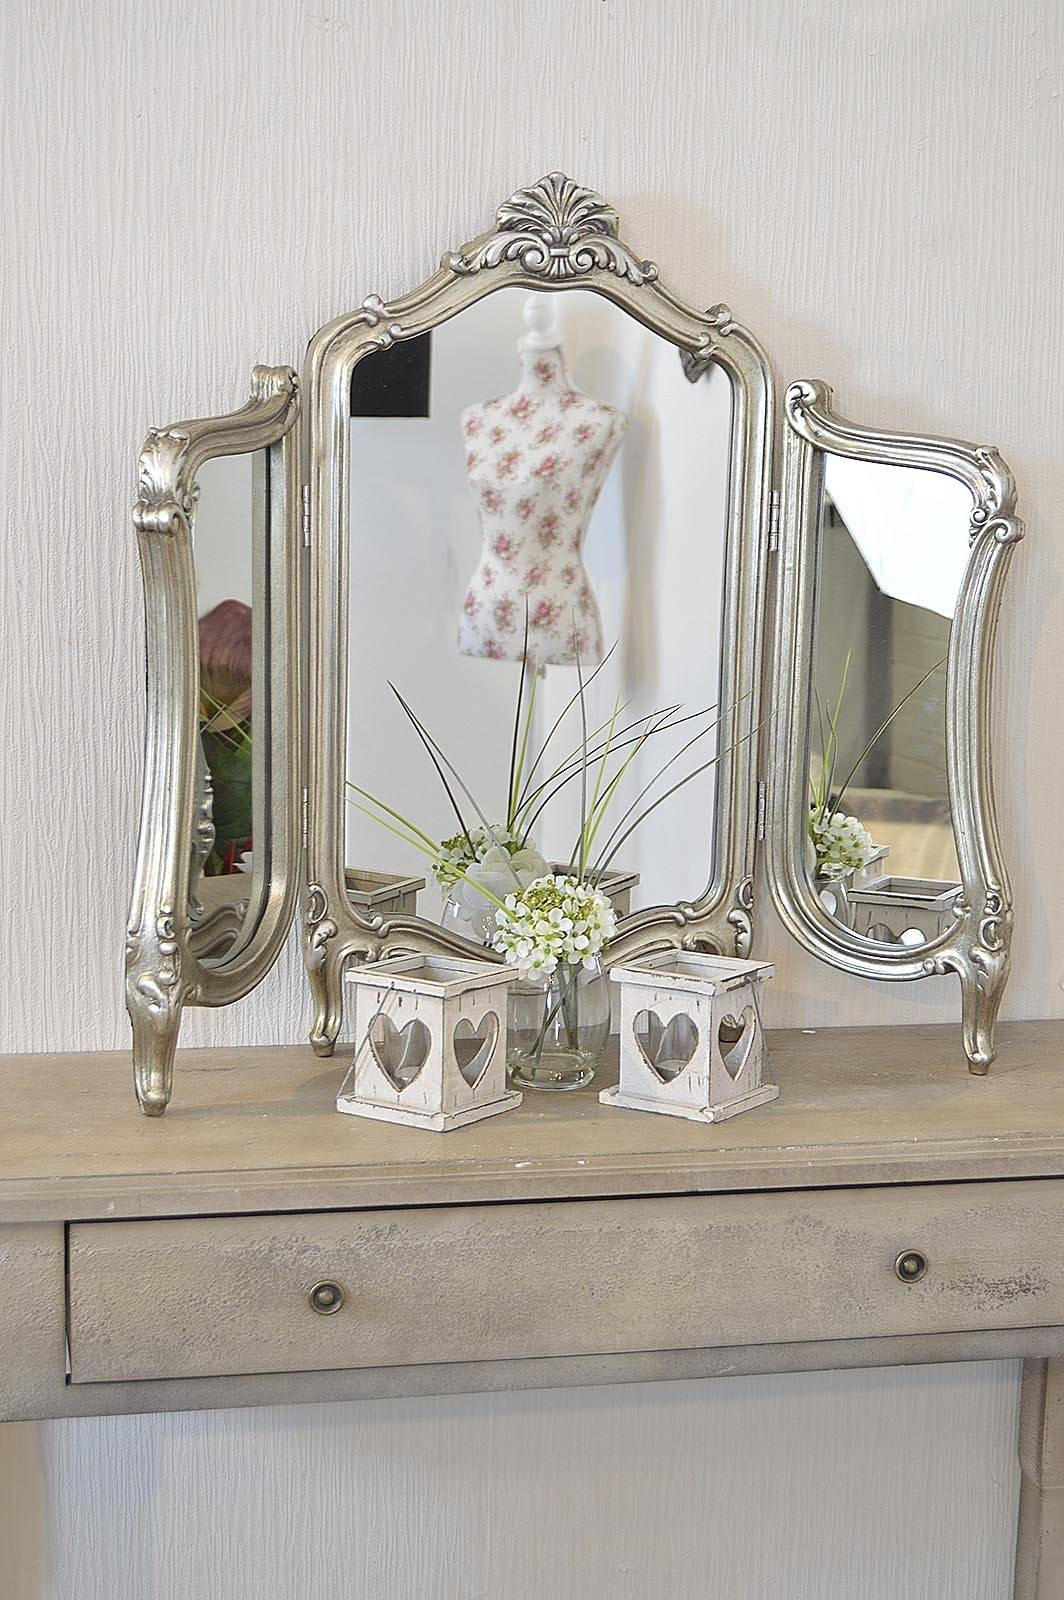 Dressing Table Mirrors | Best Decor Things Throughout Silver Dressing Table Mirrors (View 8 of 15)